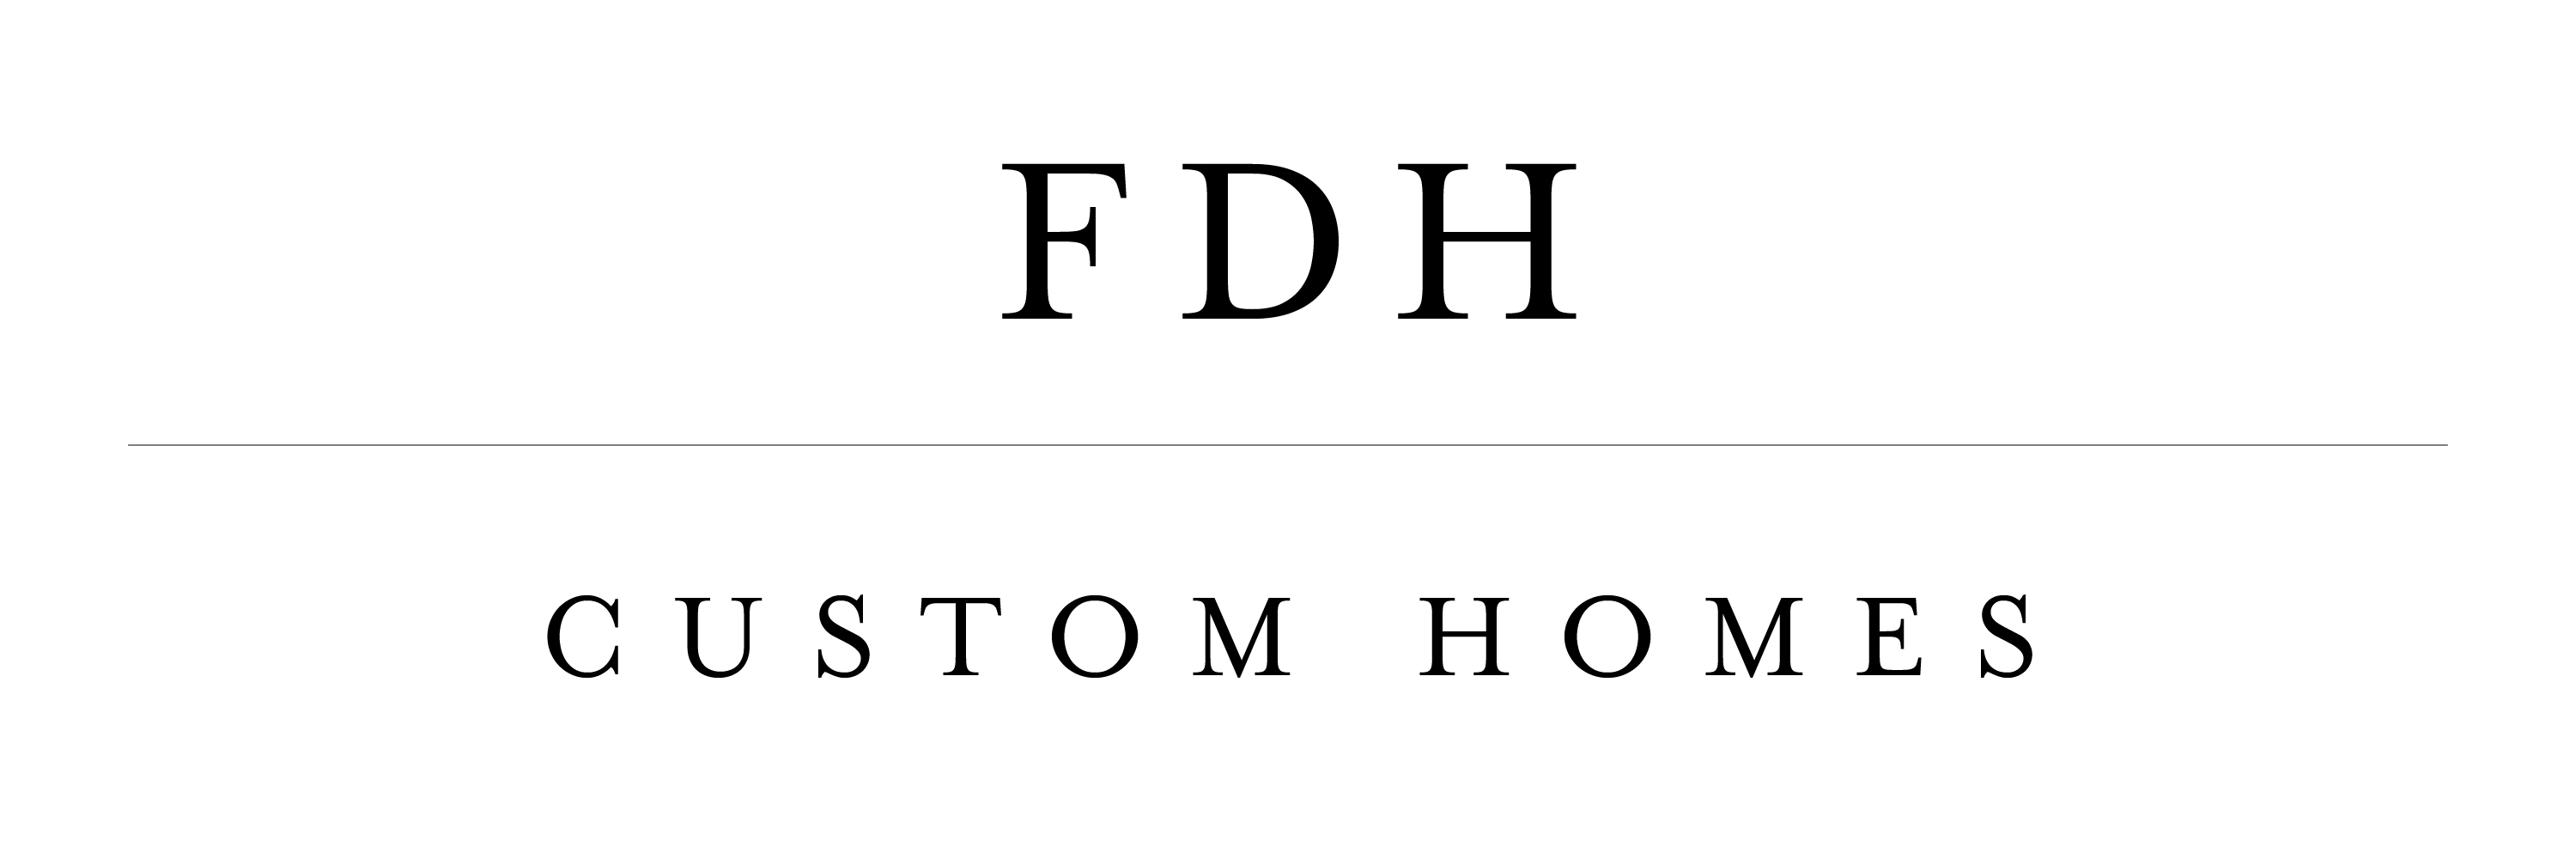 FDH Custom Homes-logo